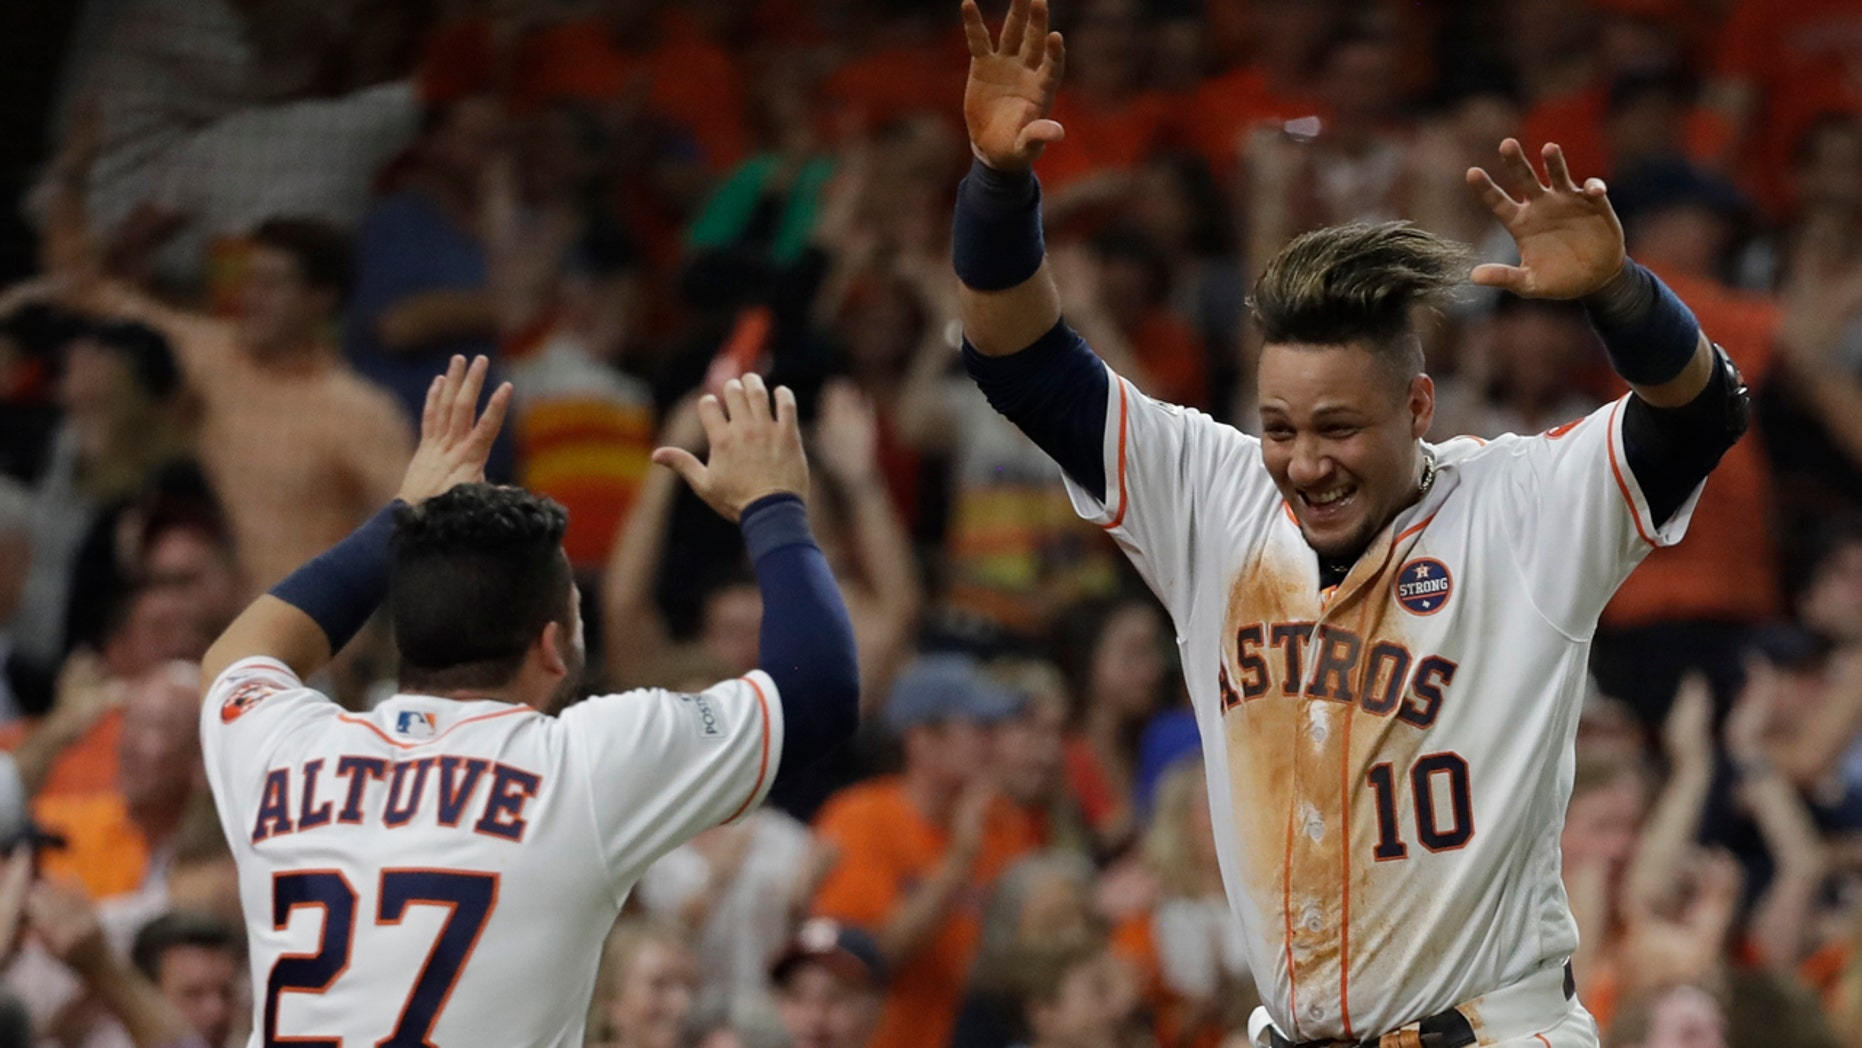 Houston Astros' Yuli Gurriel is congratulated by Jose Altuve after scoring during the fifth inning of Game 7 of baseball's American League Championship Series against the New York Yankees Saturday, Oct. 21, 2017, in Houston.